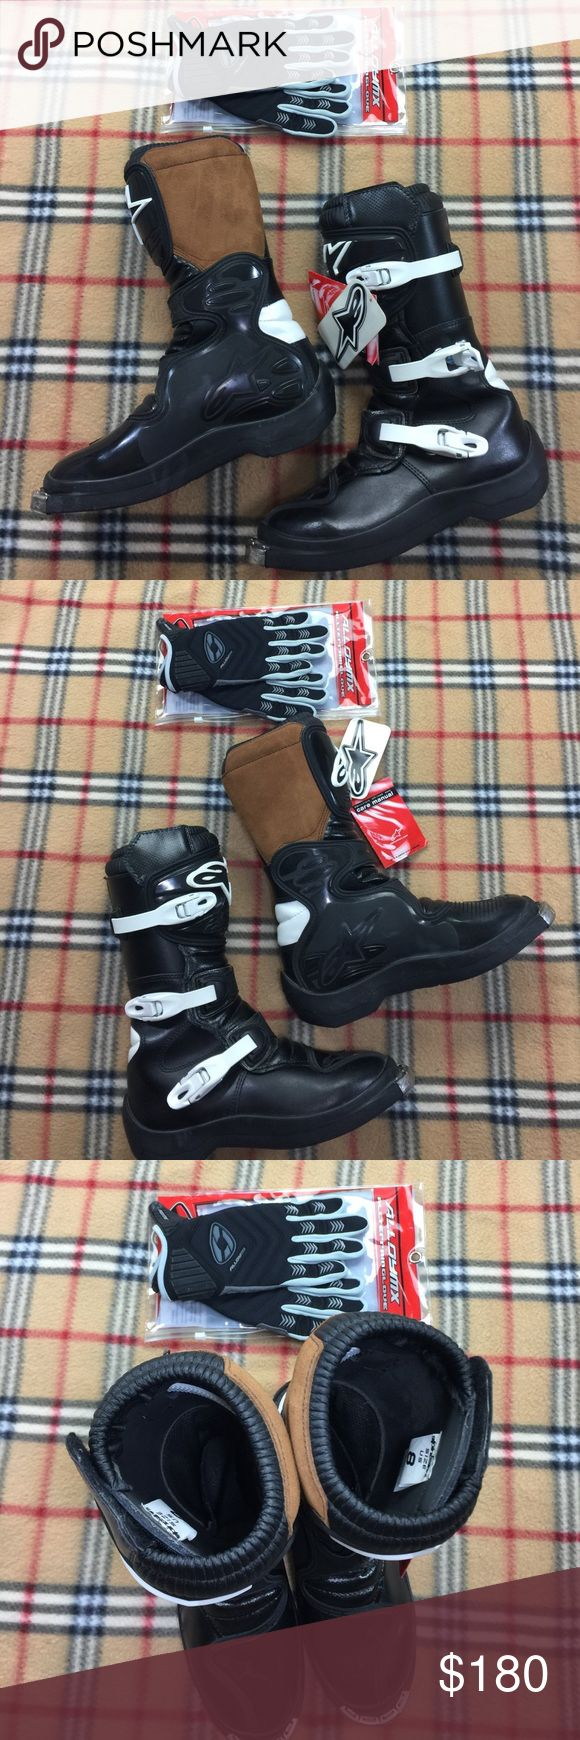 Alpinestars Italy Motocross Boots Brand new mint state unworn with tags women's motocross boots. Care instruction booklet included. Black with white buckles and chocolate brown leather on innner calf. These boots are professional grade and are designed and engineered to provide the best riding experience possible. The gloves are Alloy MX All Terrain Gloves Size S/8. If you look closely in the pics where the marker line is the price, $34.99 value. They and brand New With Tags also. They are a…